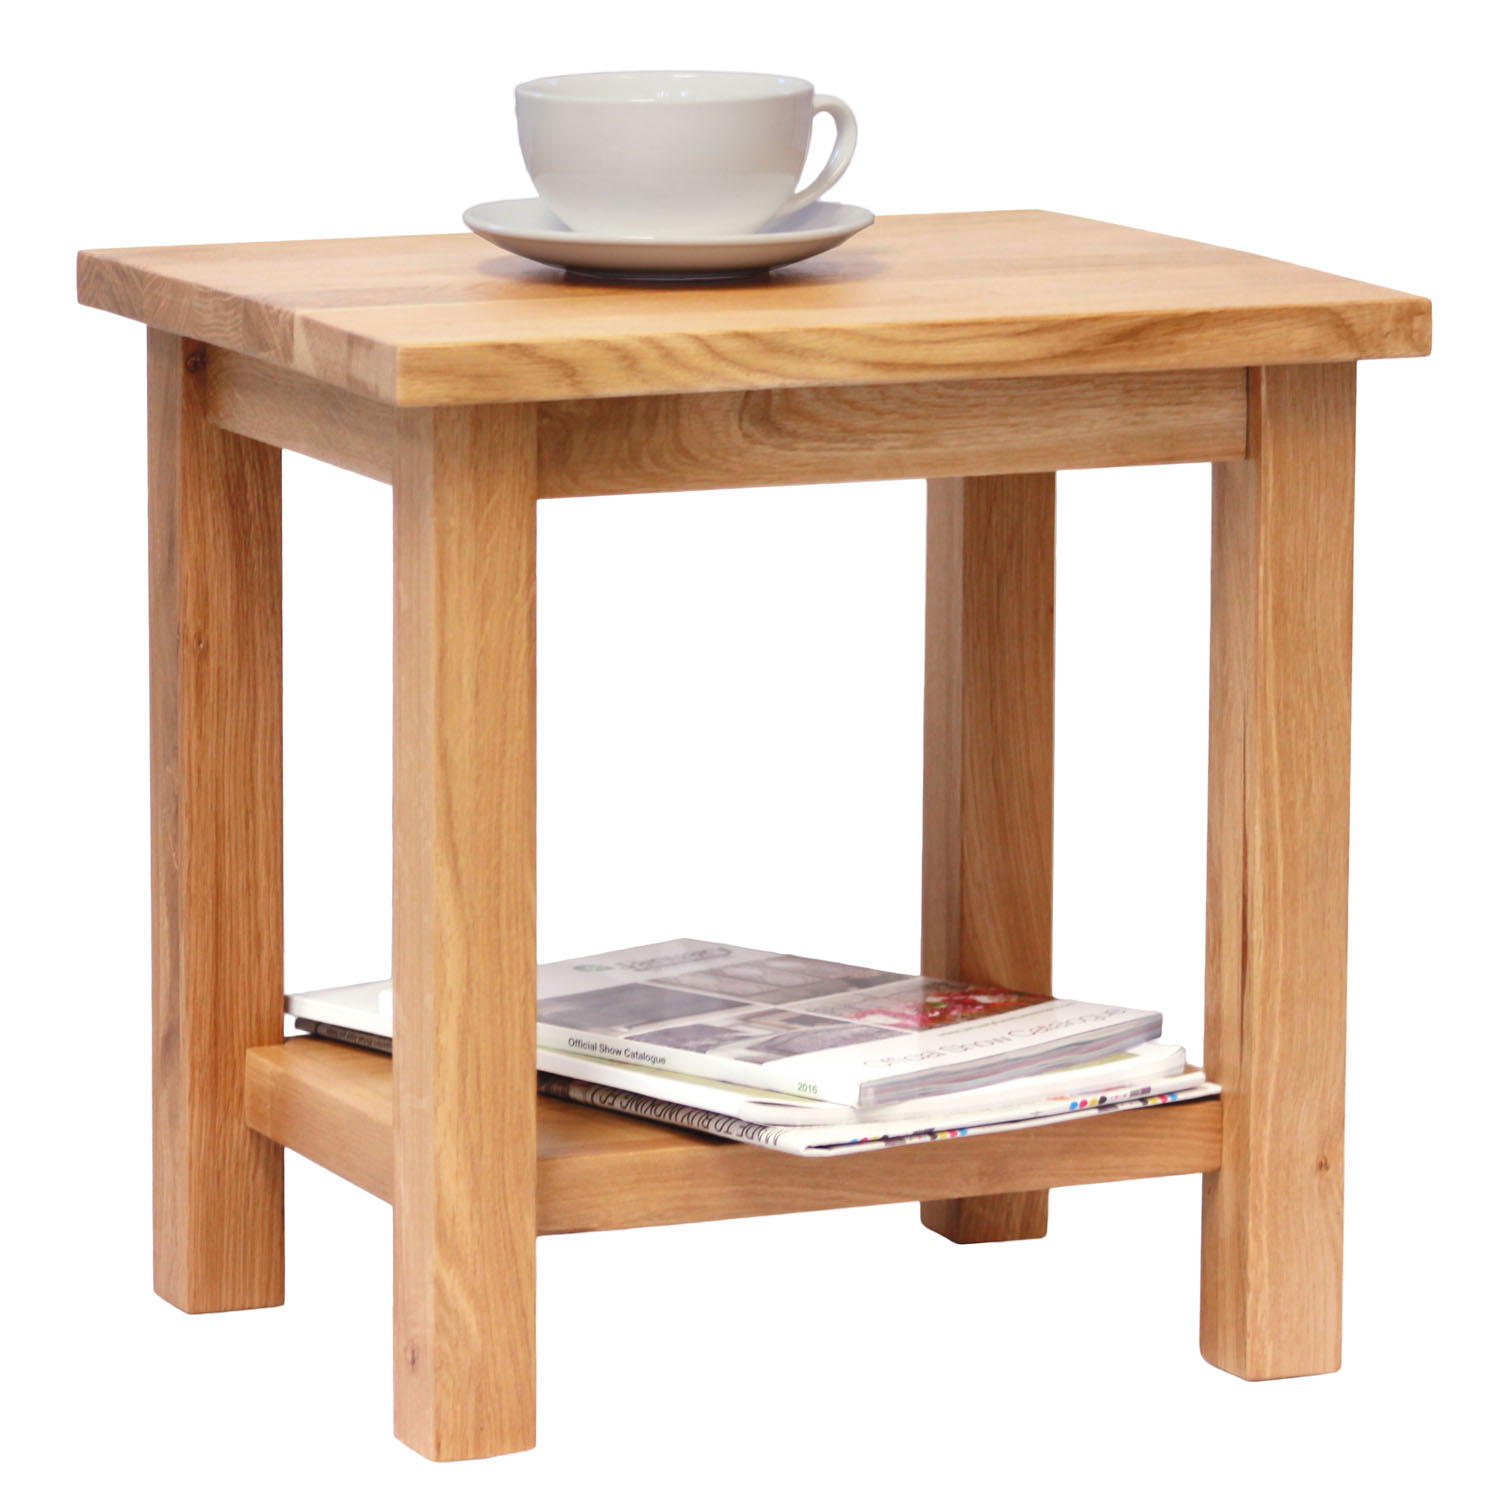 Small oak side table wooden end lamp table bedside for Small wooden side table